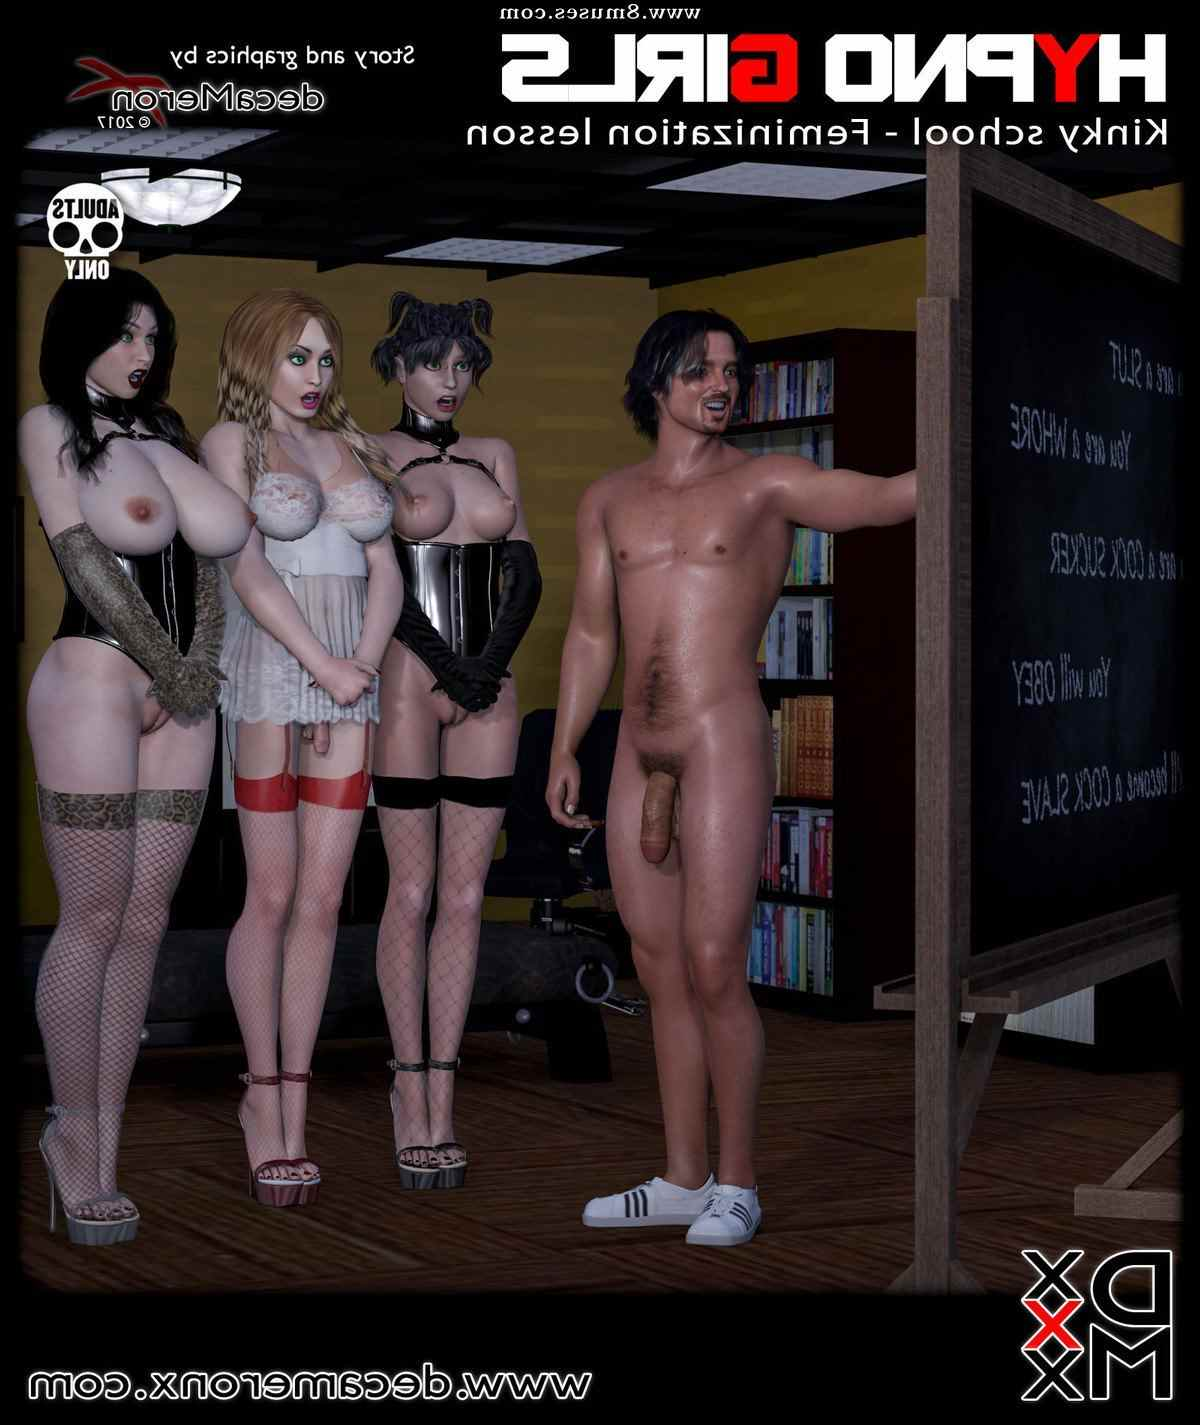 Decameron-X-Comics/Hypno-Girls-Kinky-School-Feminization-Lesson Hypno_Girls_-_Kinky_School_-_Feminization_Lesson__8muses_-_Sex_and_Porn_Comics.jpg